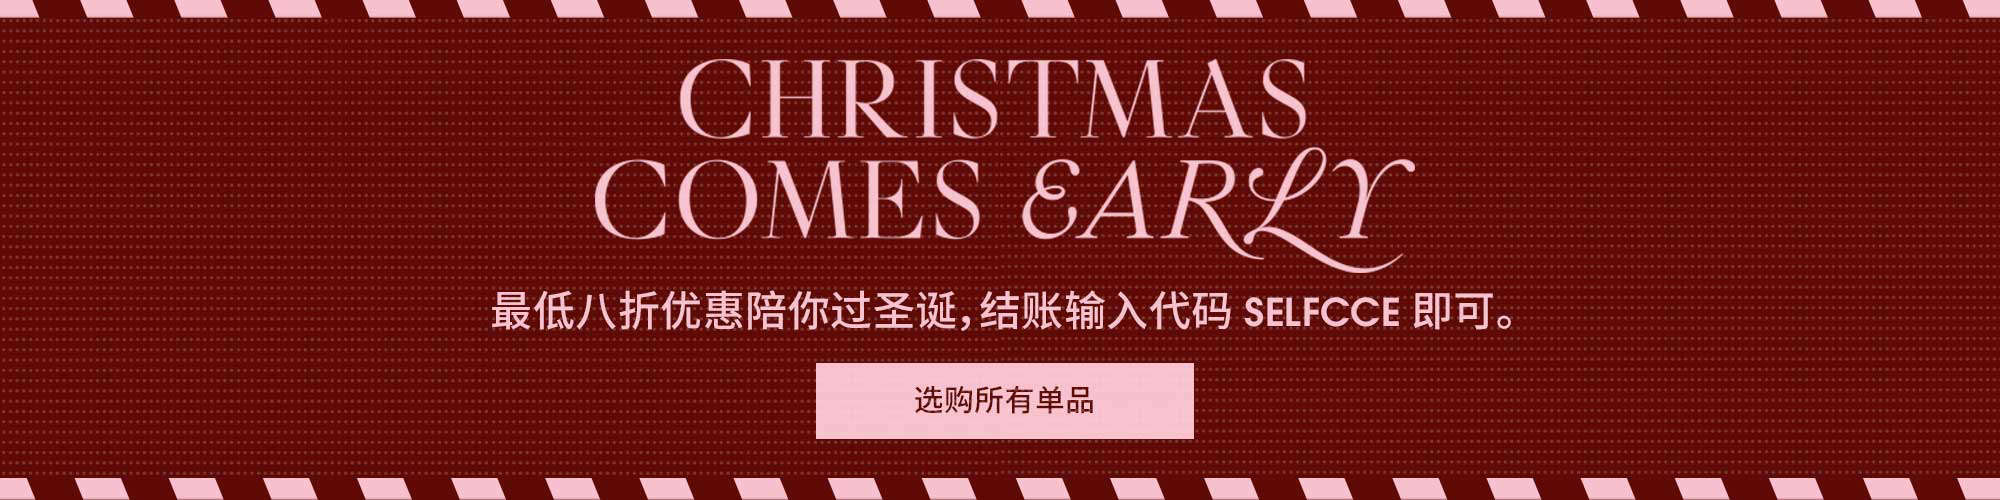 CHRISTMAS COMES EARLY. 享受最低八折优惠 - 结账输入代码 SELFCCE。